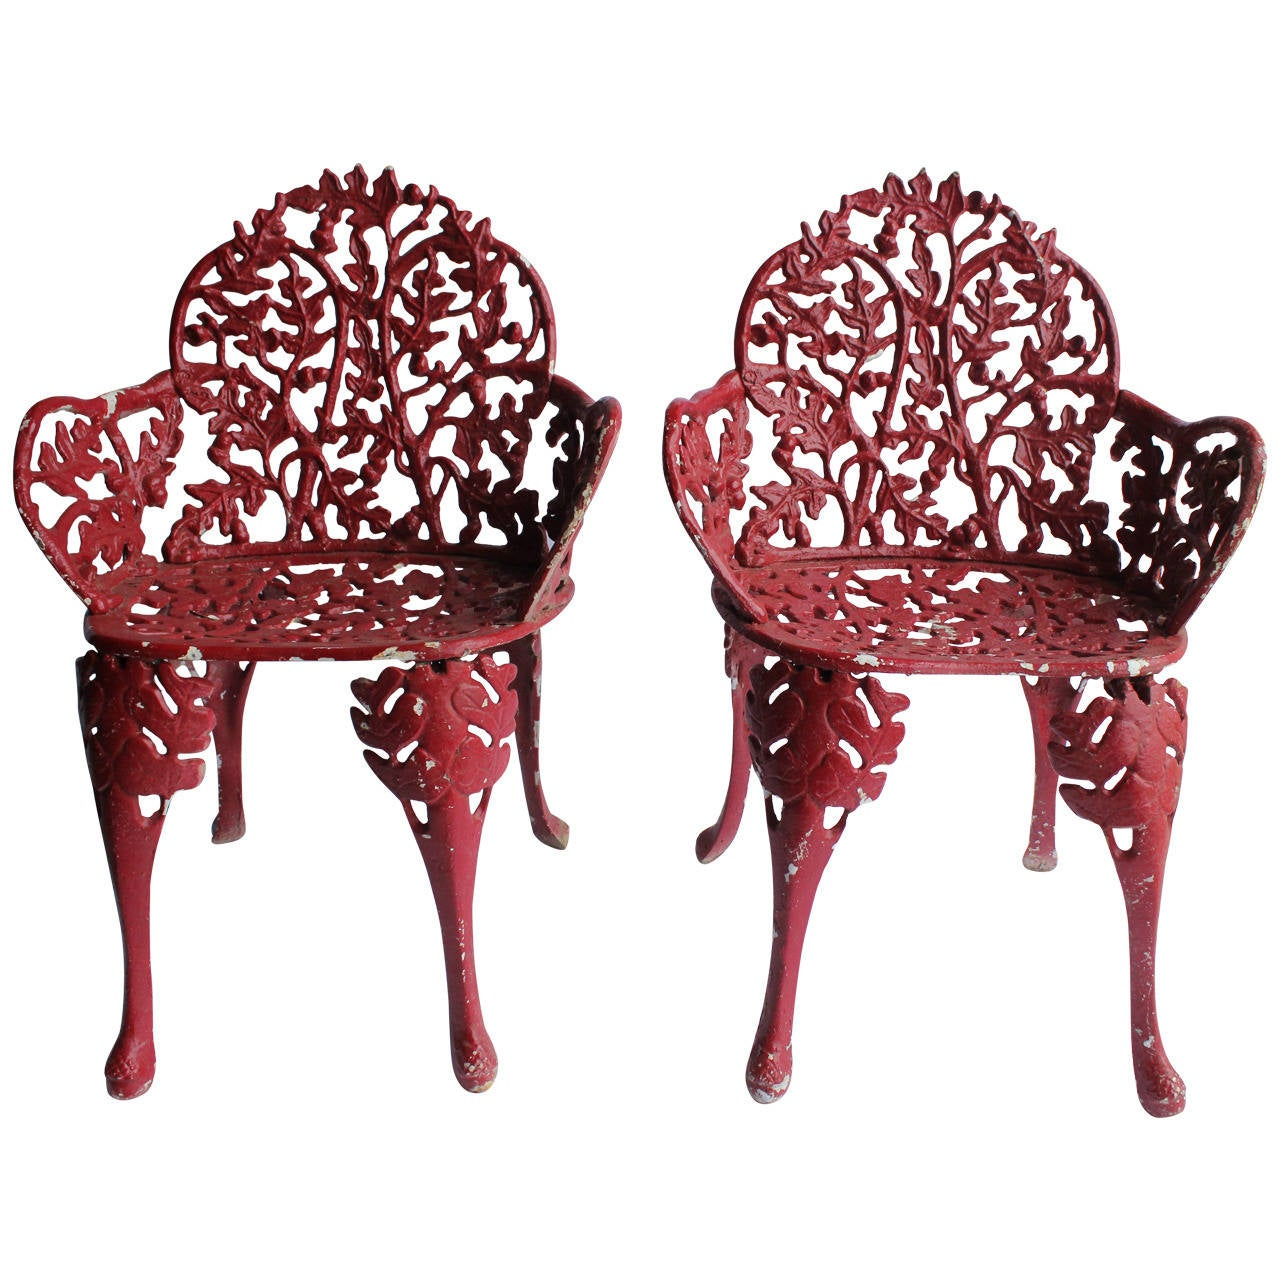 Stylish antique cast iron garden chairs at 1stdibs for Cast iron garden furniture